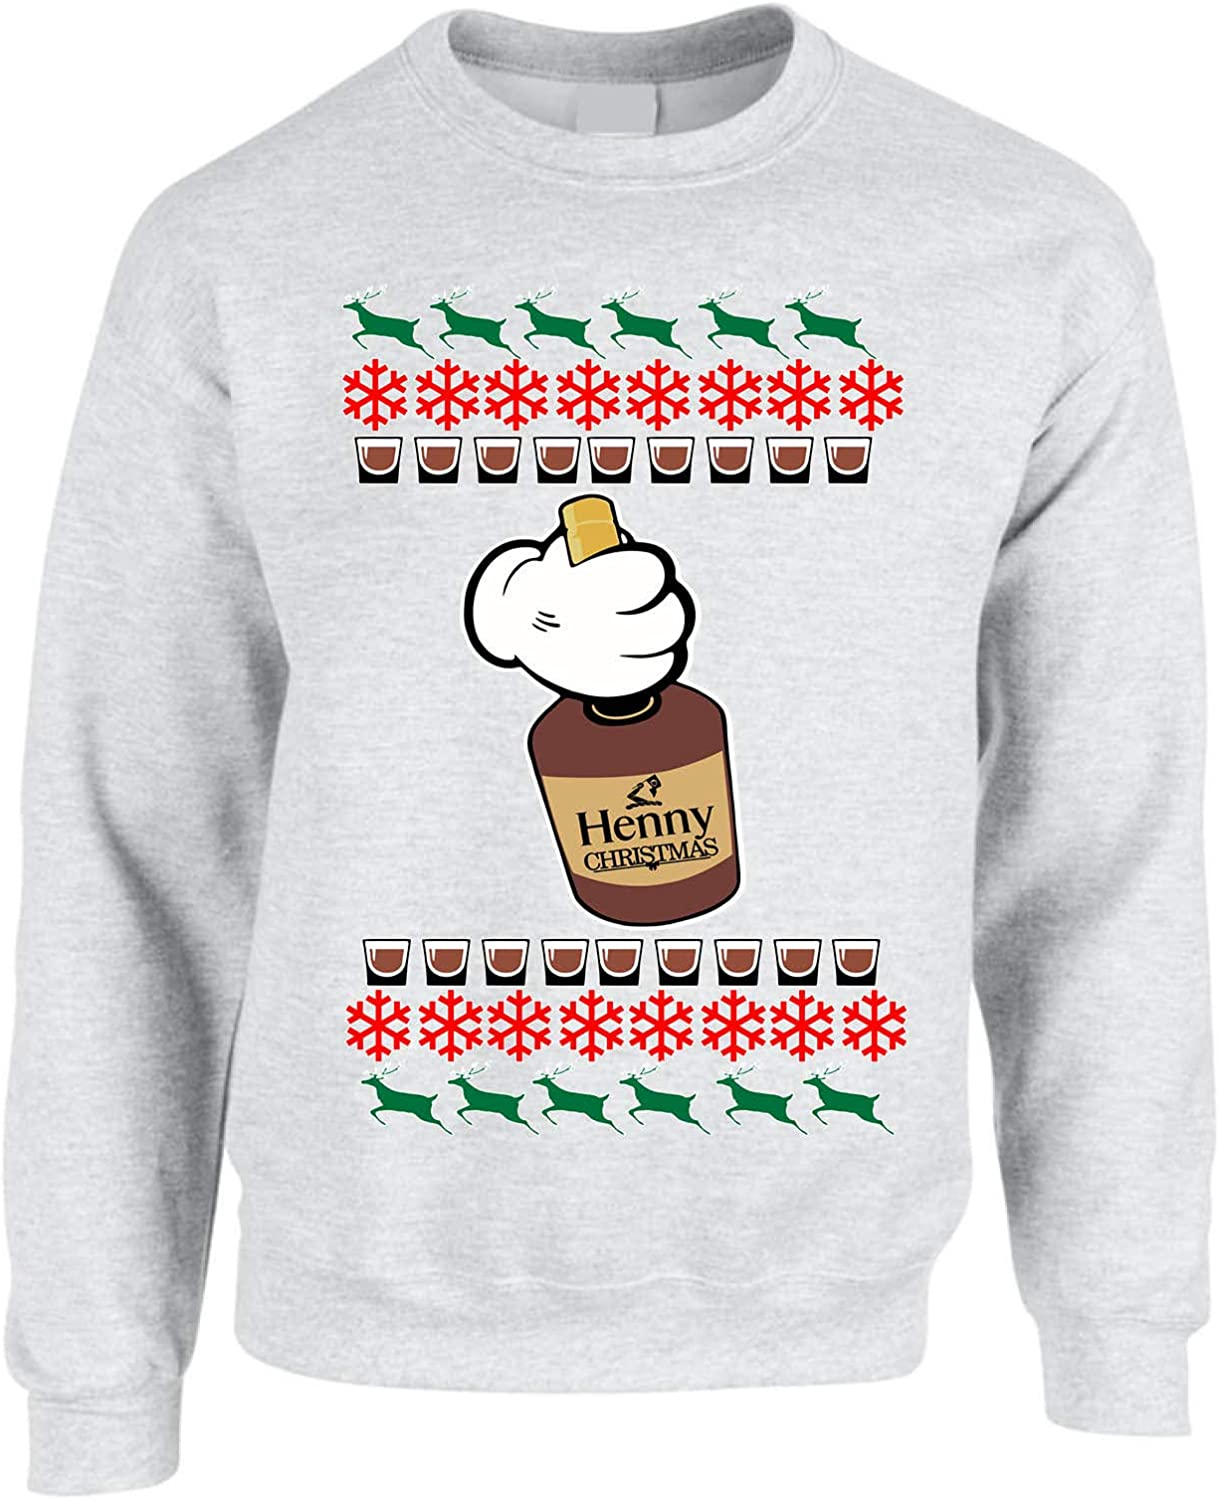 ALLNTRENDS Adult Sweatshirt Henny Christmas Ugly Xmas Sweater Cozy